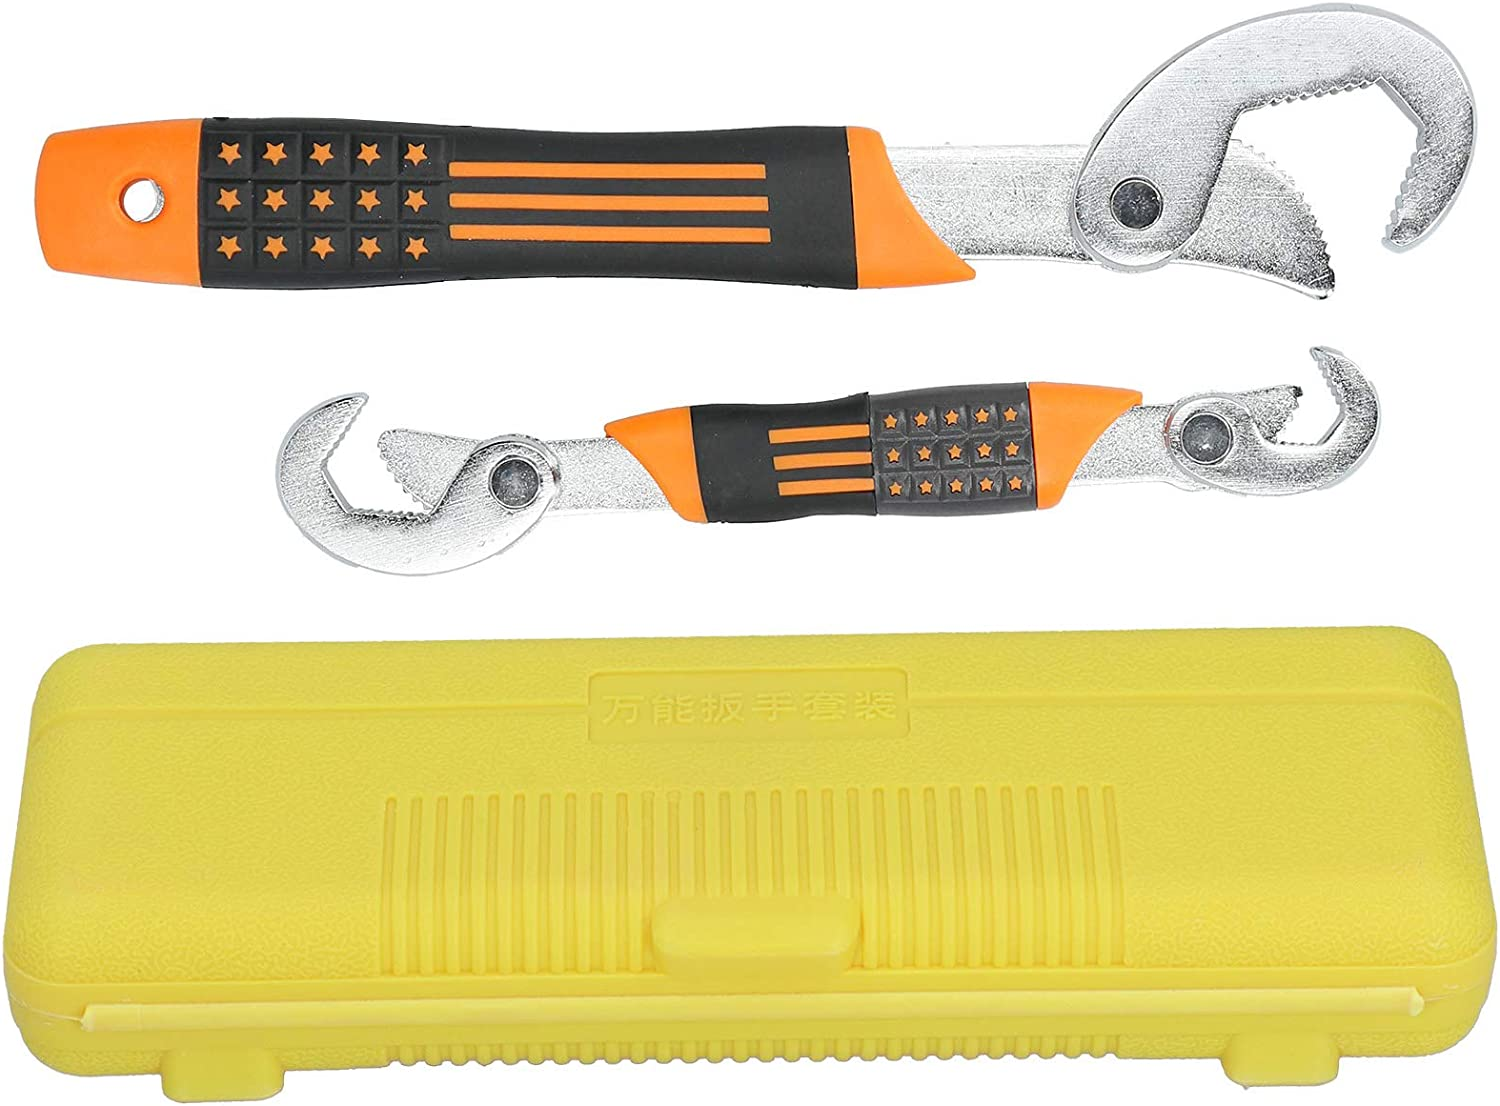 Grip Quick Wrench Non‑Slip Multi‑function 2Pcs//Set for Pipe Nut Screw Family Emergency Hand Tool Grip Pipe Wrench